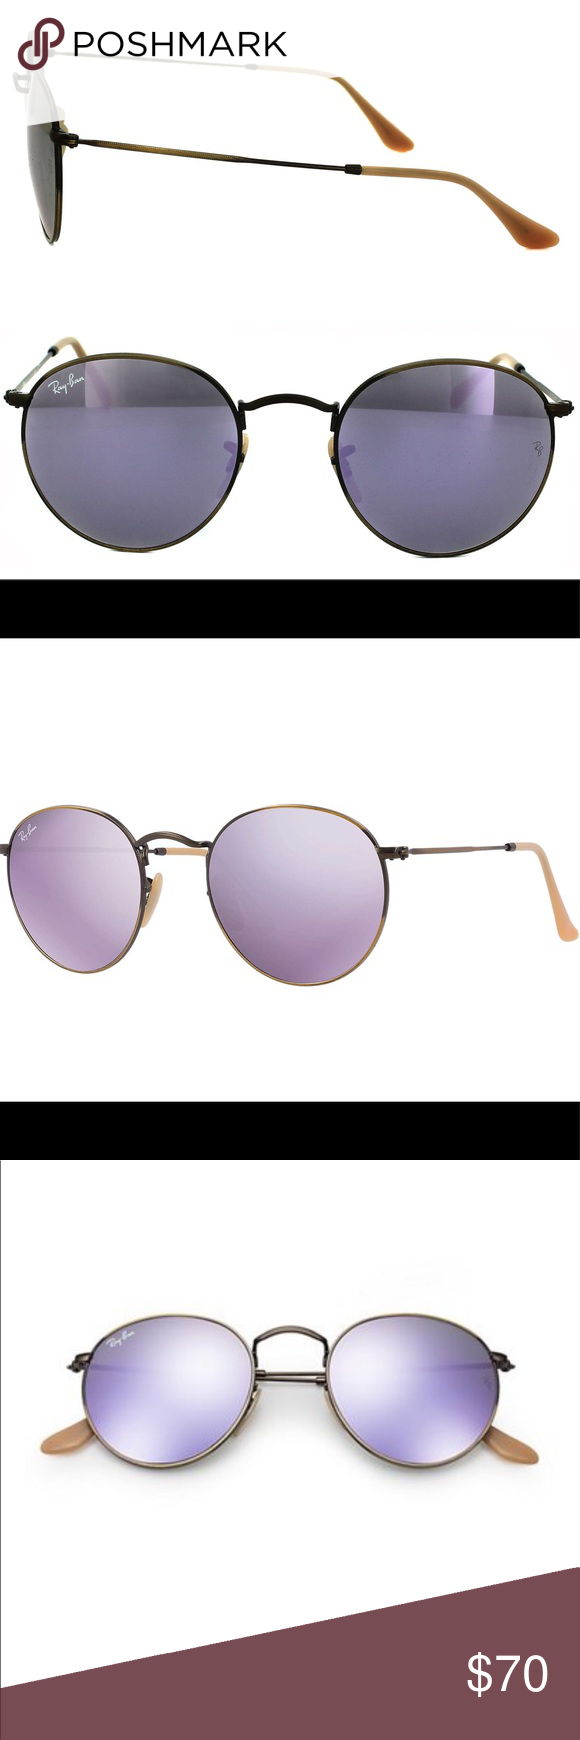 c1c7f77124 New Ray-Ban lilac RB3447 Round Metal 167 4k RAY-BAN RB3447 ROUND METAL Frame  Color  167 4K Demiglos Brusched Bronze Lens Color  Lillac Mirror Polarized  ...